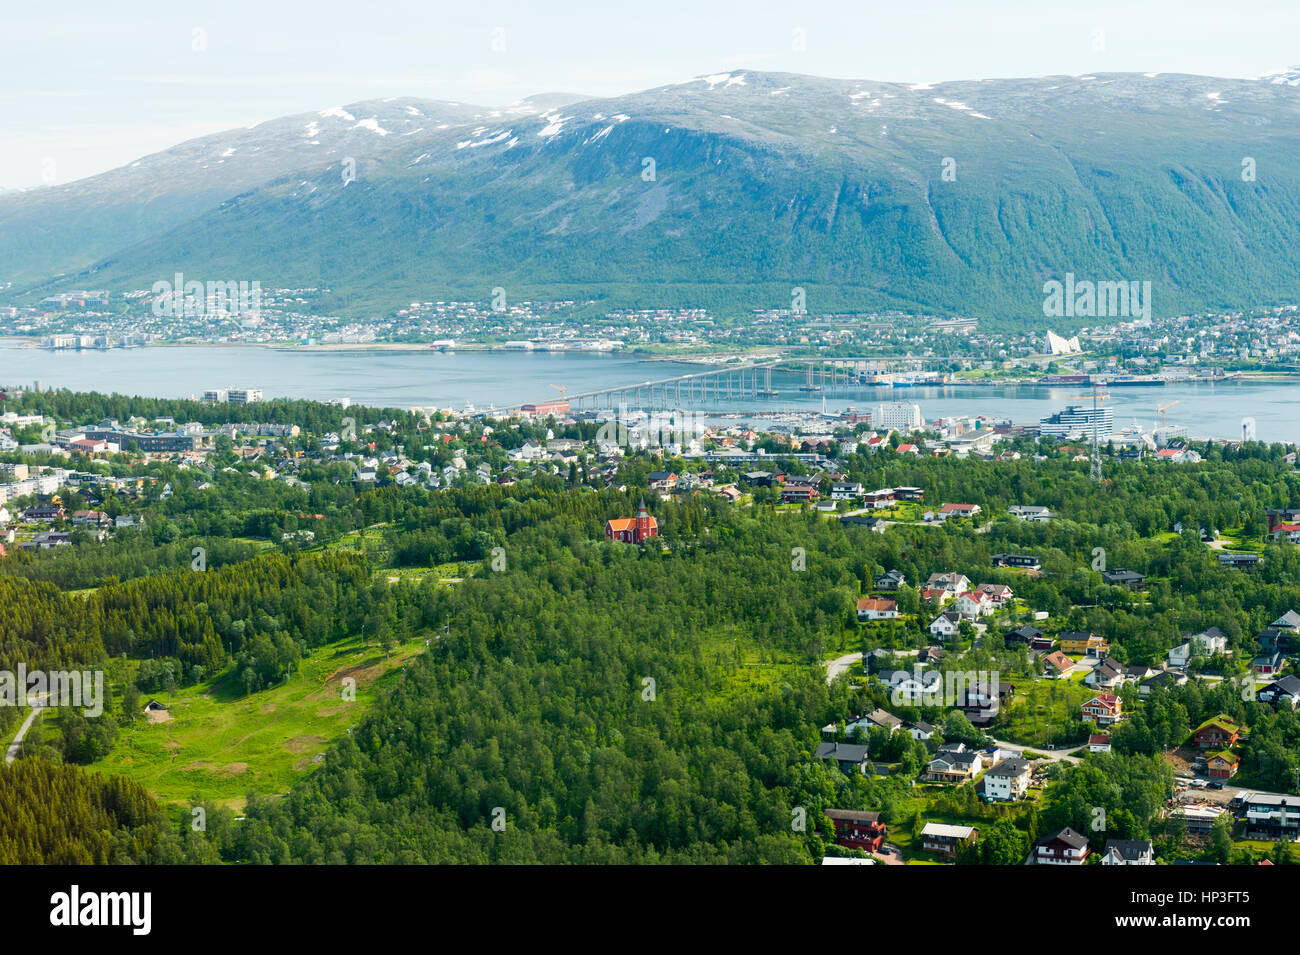 Aerial View of Tromso, Norway, Europe - Stock Image